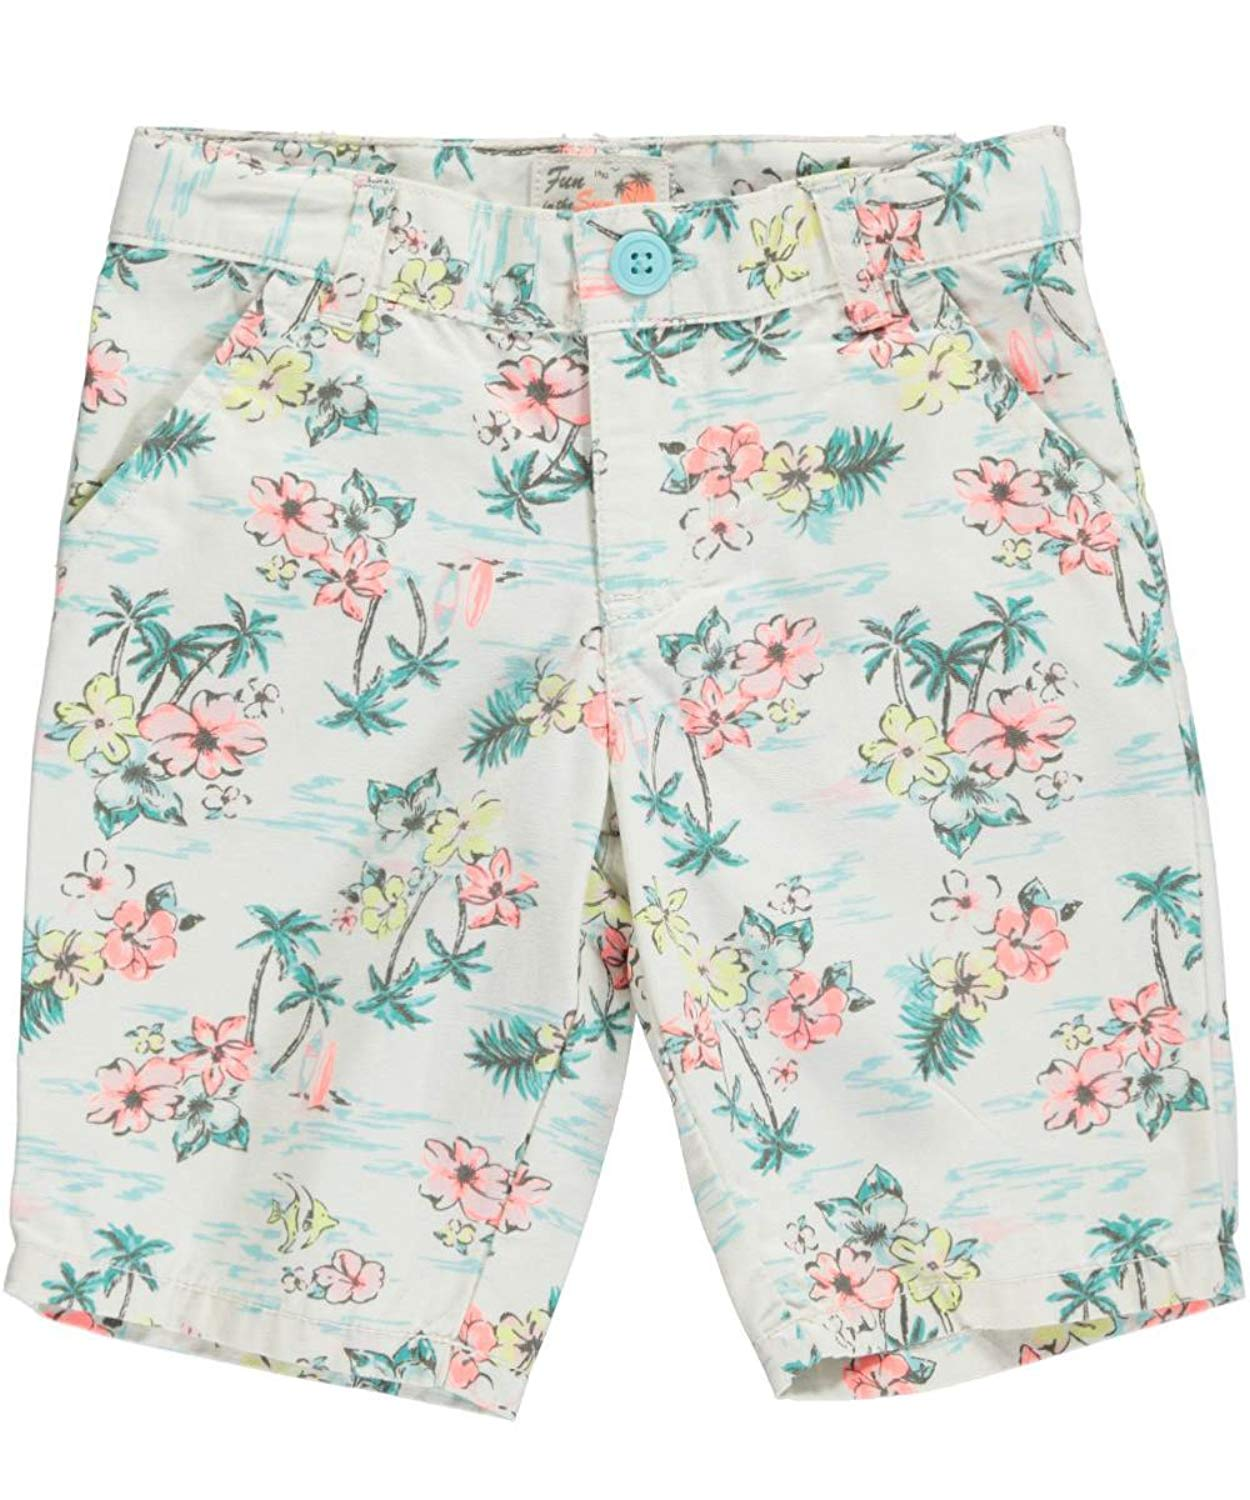 FullBo Tropical Leaves Green Watercolor Palm Leaf Little Boys Short Swim Trunks Quick Dry Beach Shorts